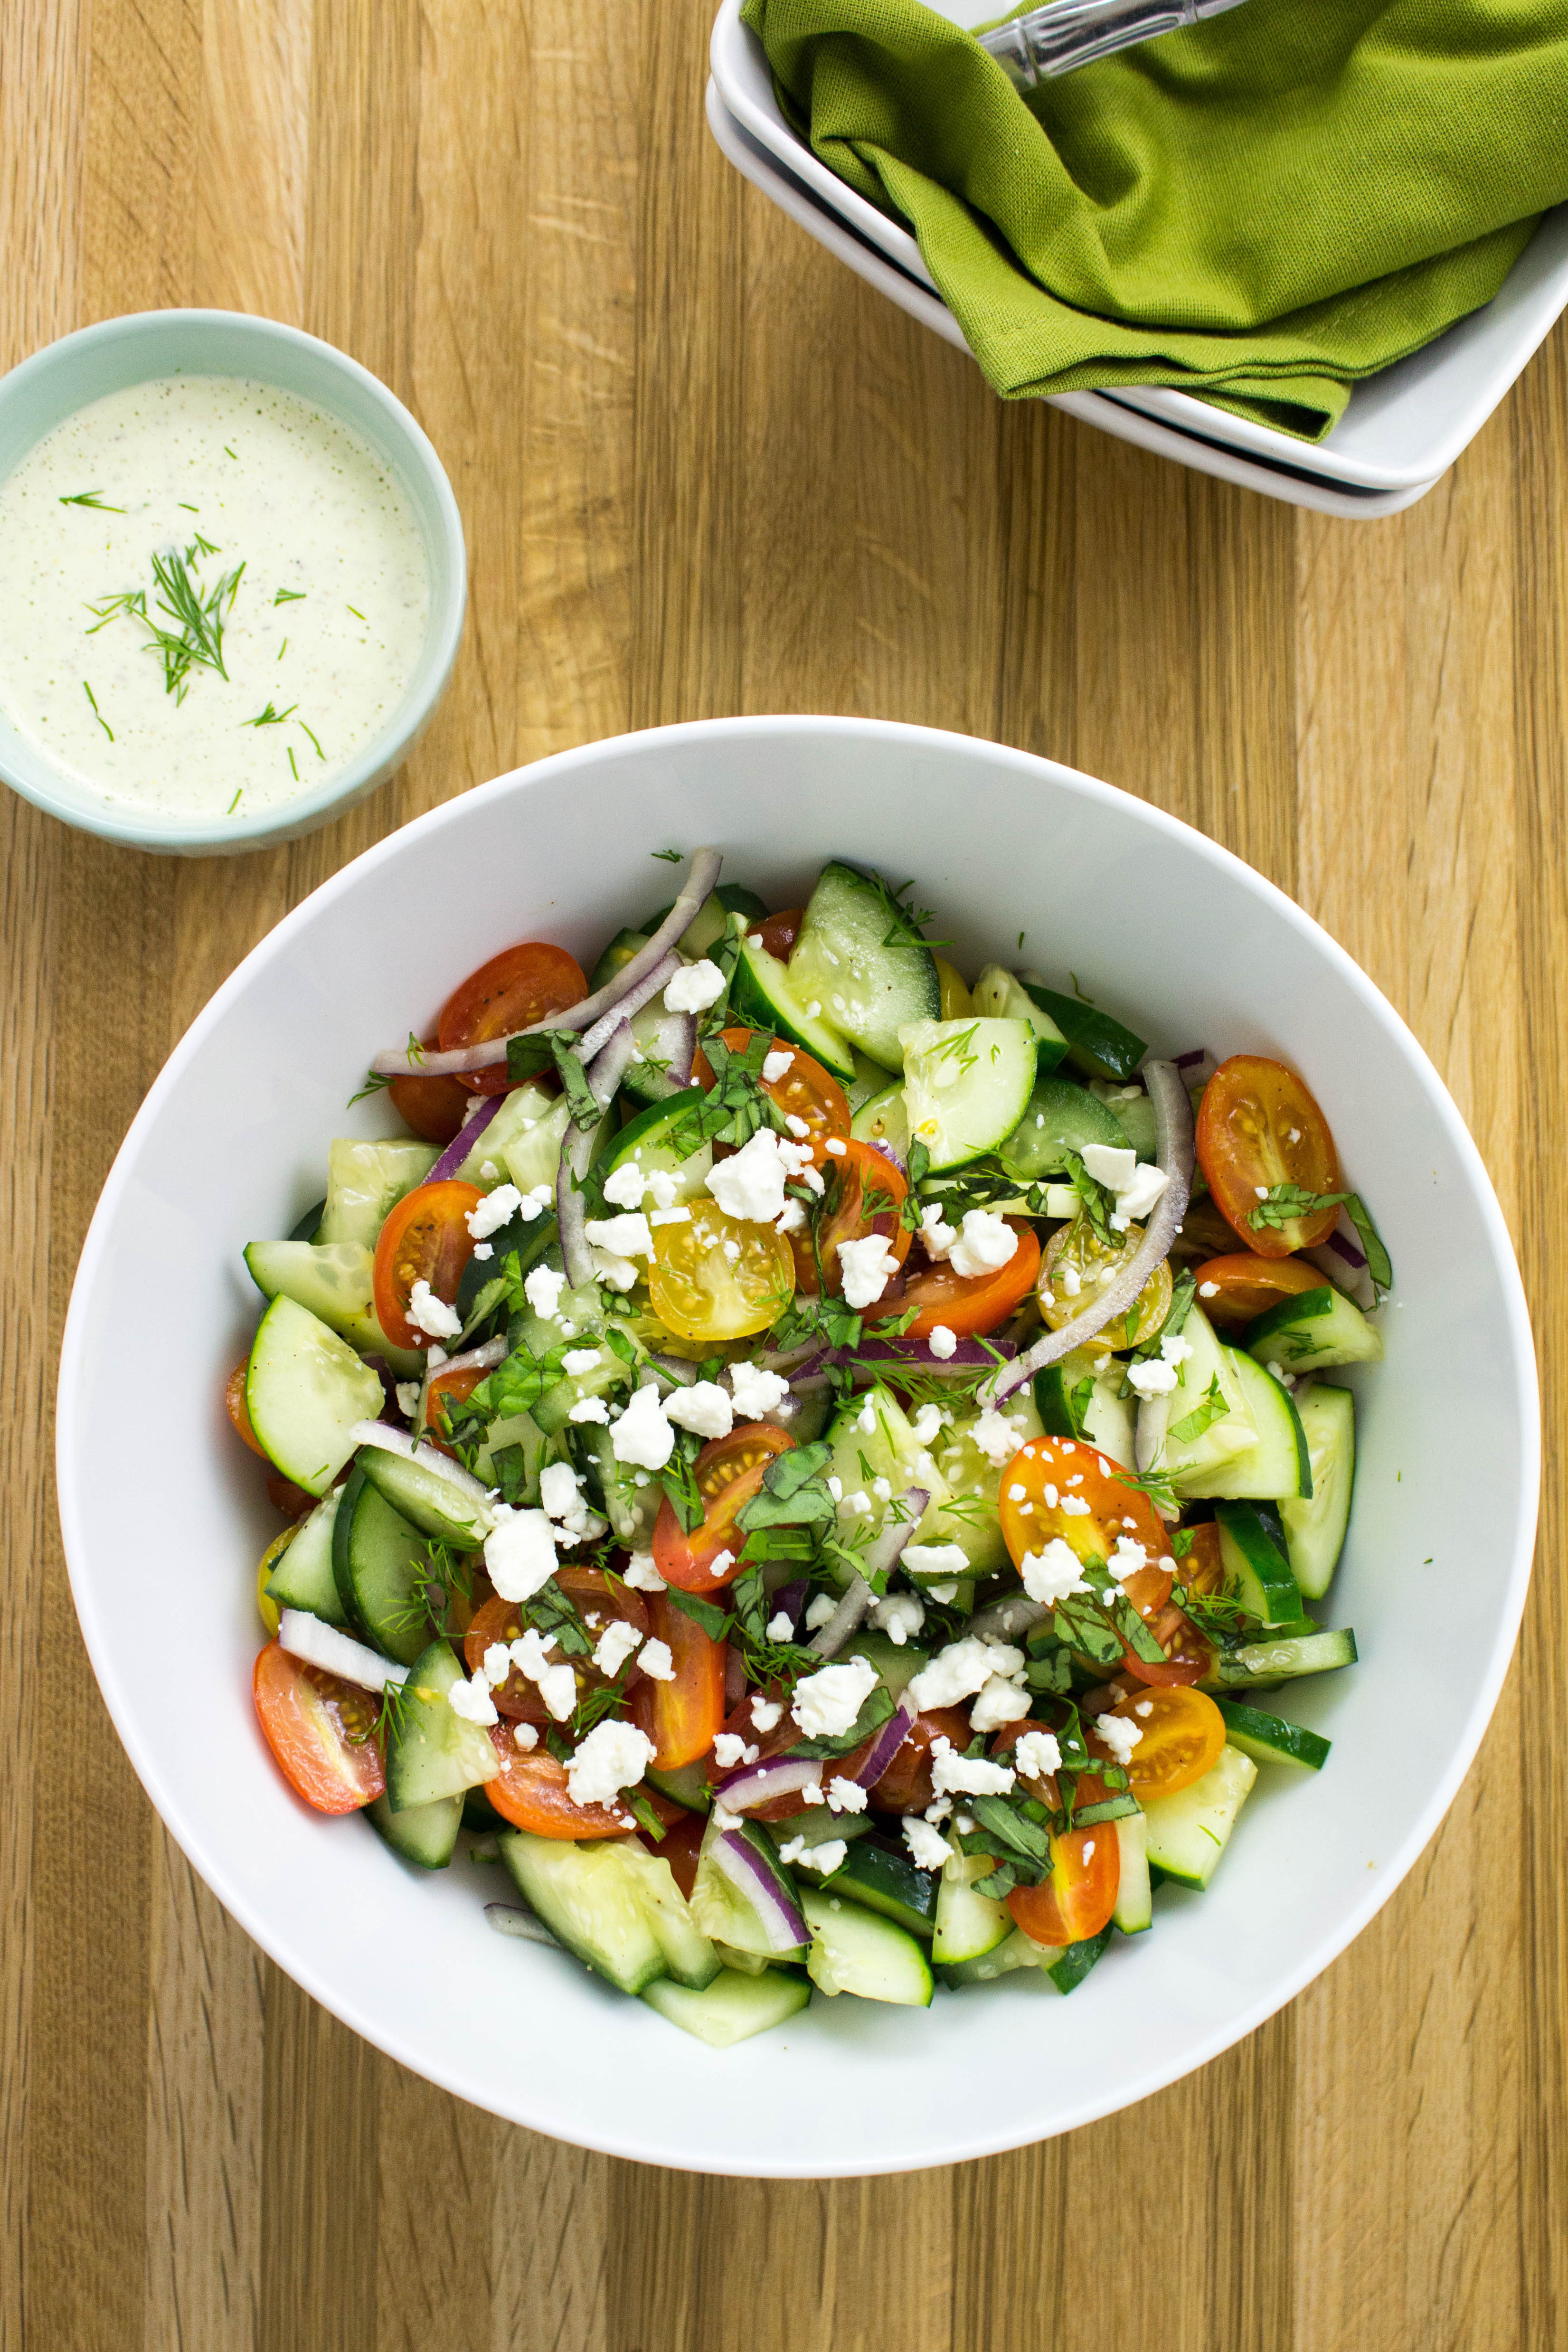 Cucumber Tomato Salad with Herb Vinaigrette is a delicious mix of cucumbers and grape tomatoes tossed in a creamy herb vinaigrette topped with feta cheese. Great for weekday lunch or a picnic! Weight Watchers friendly recipe! www.bitesofflavor.com